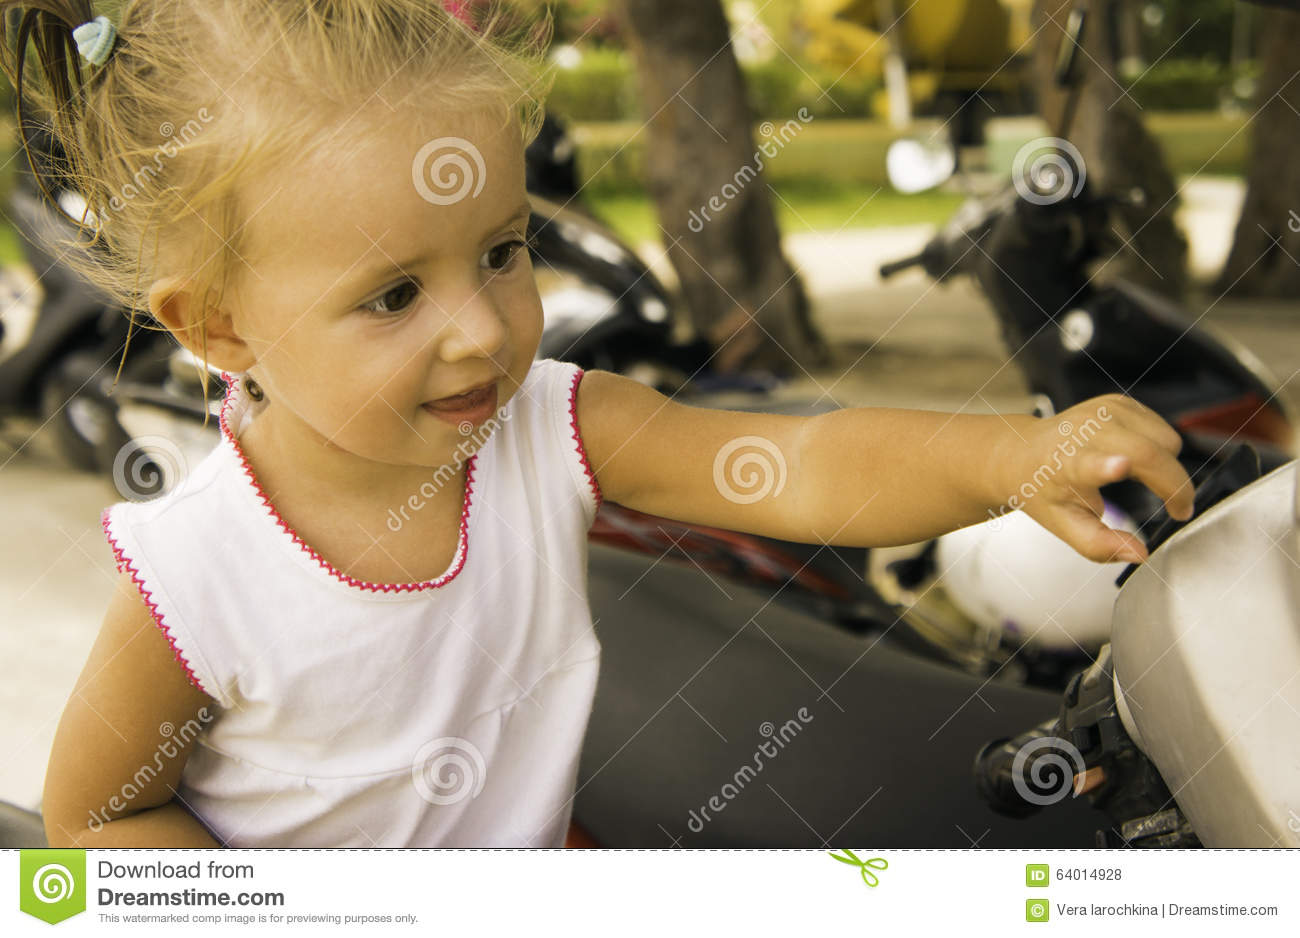 Beautiful little girl sitting on the bike in the park. she examines and studies it.